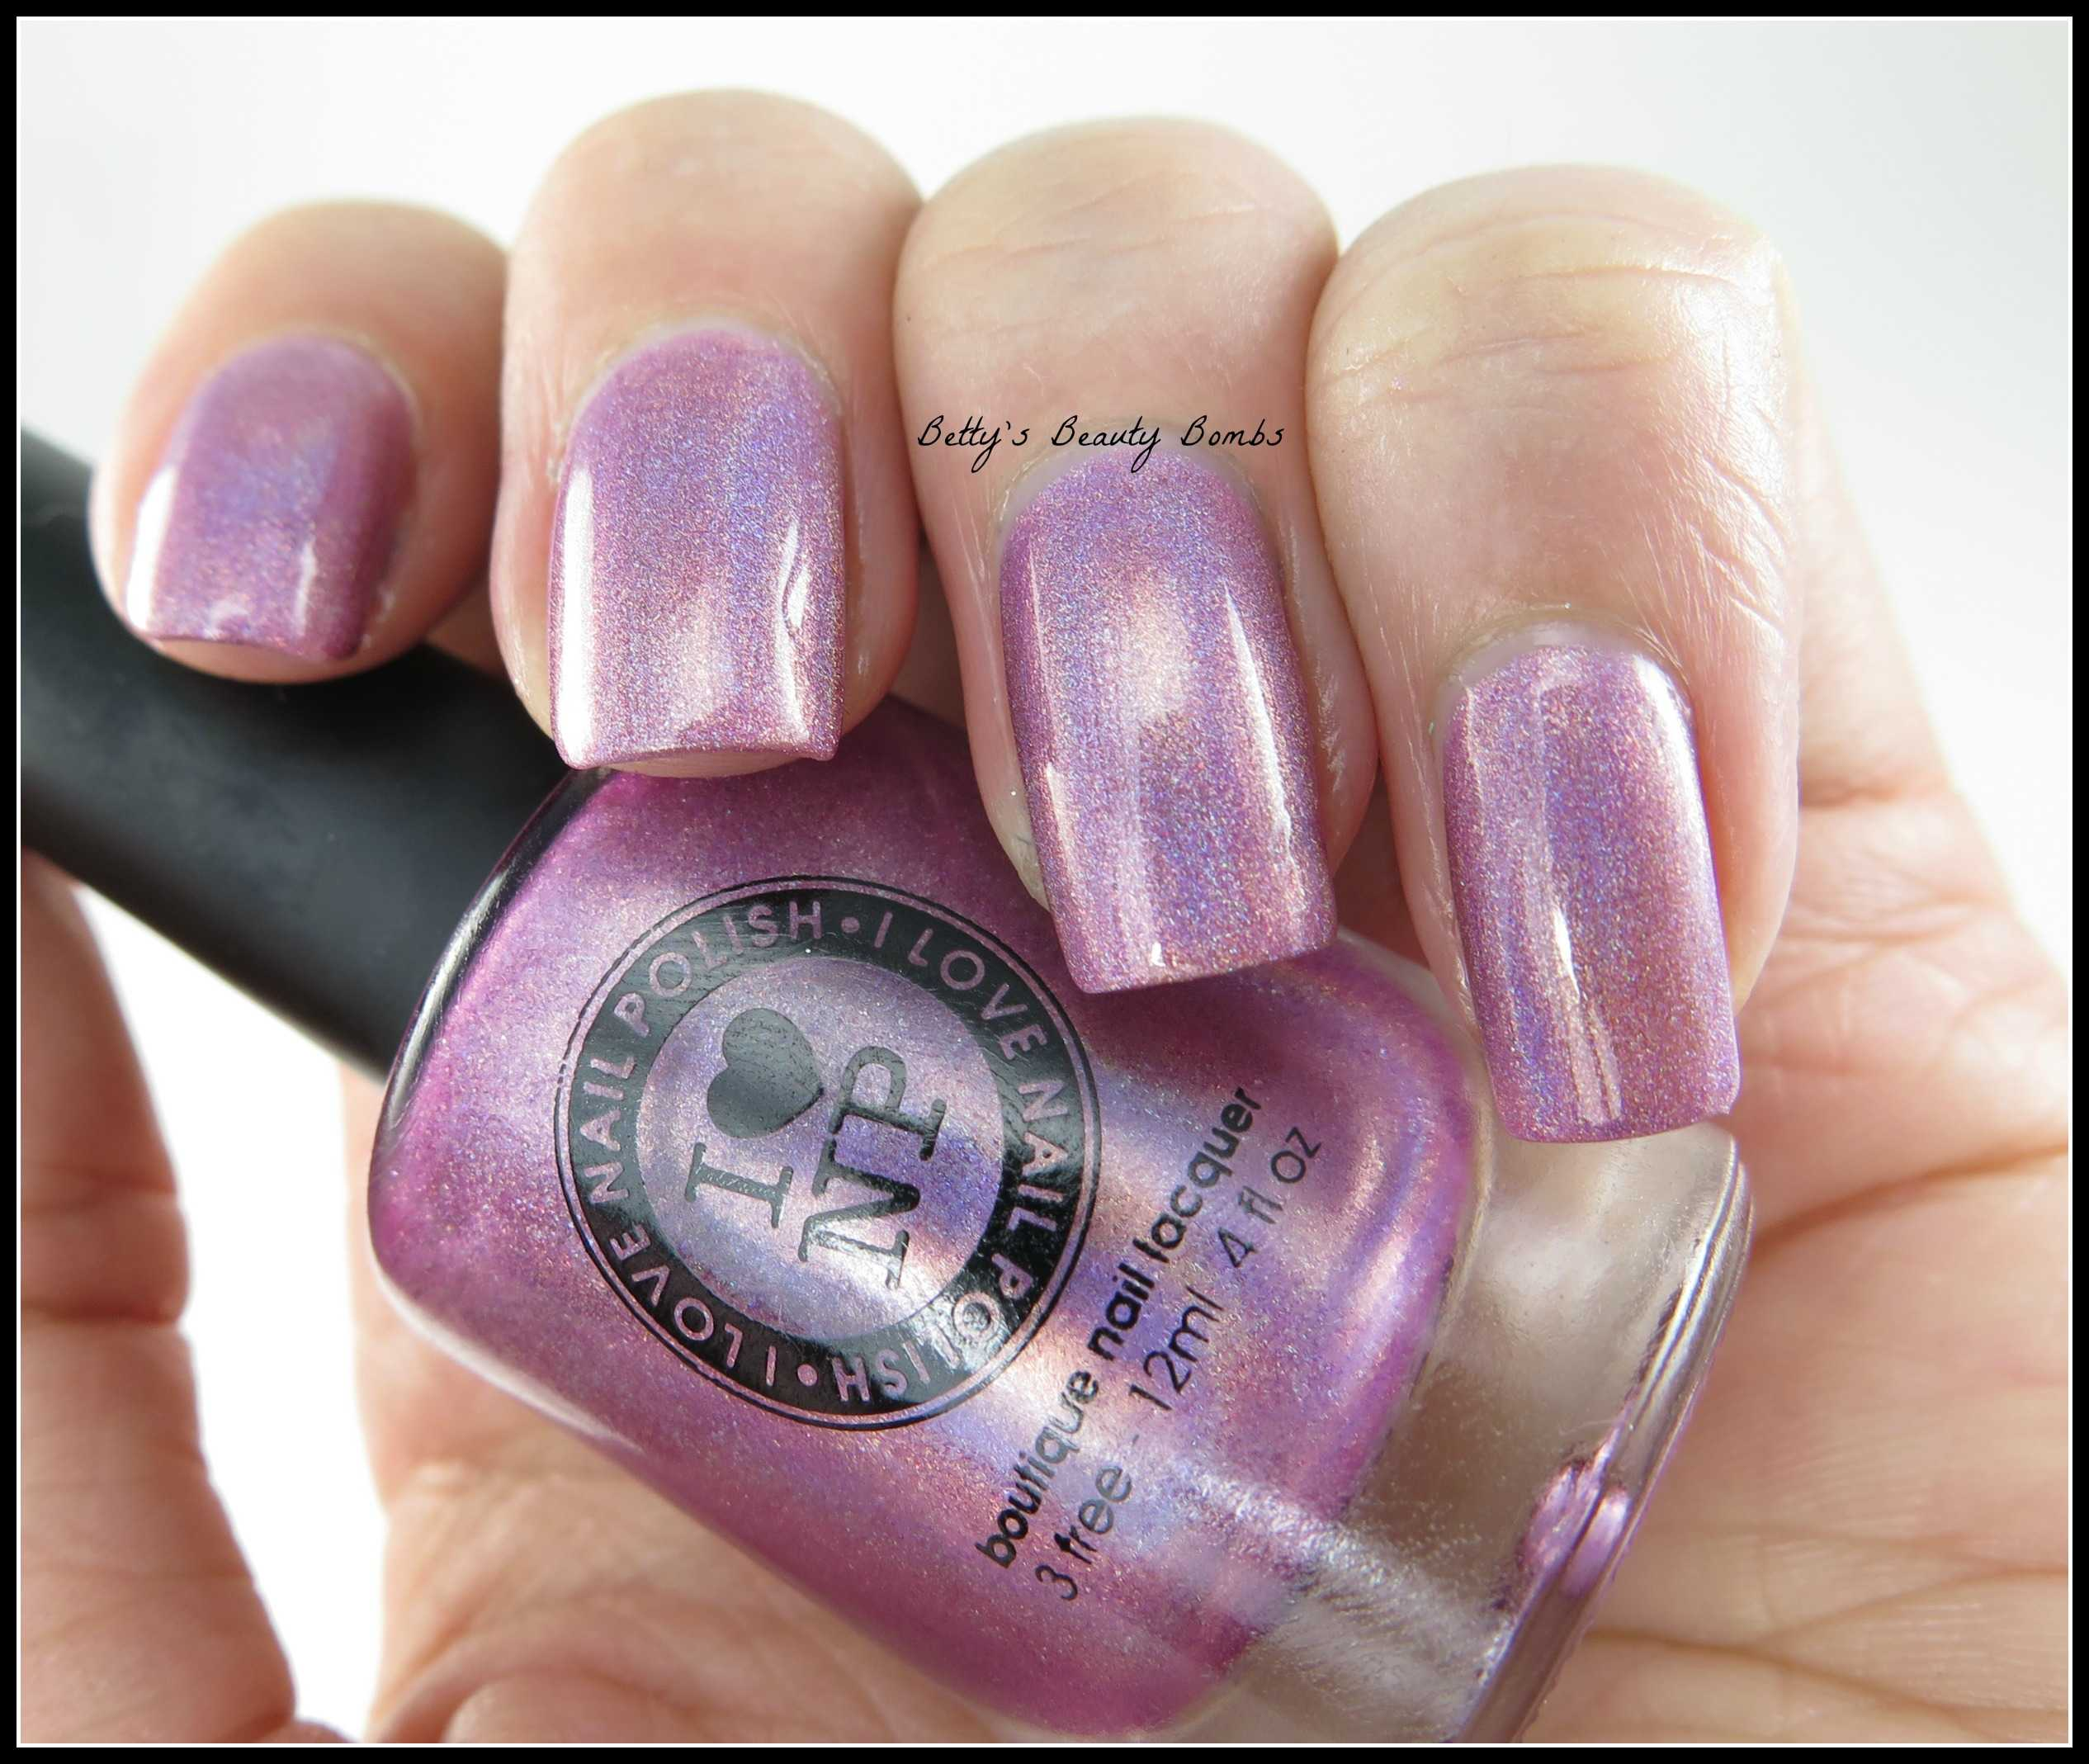 I Love Nail Polish Cygnus Loop meets Pixie Dust - Lazy Betty